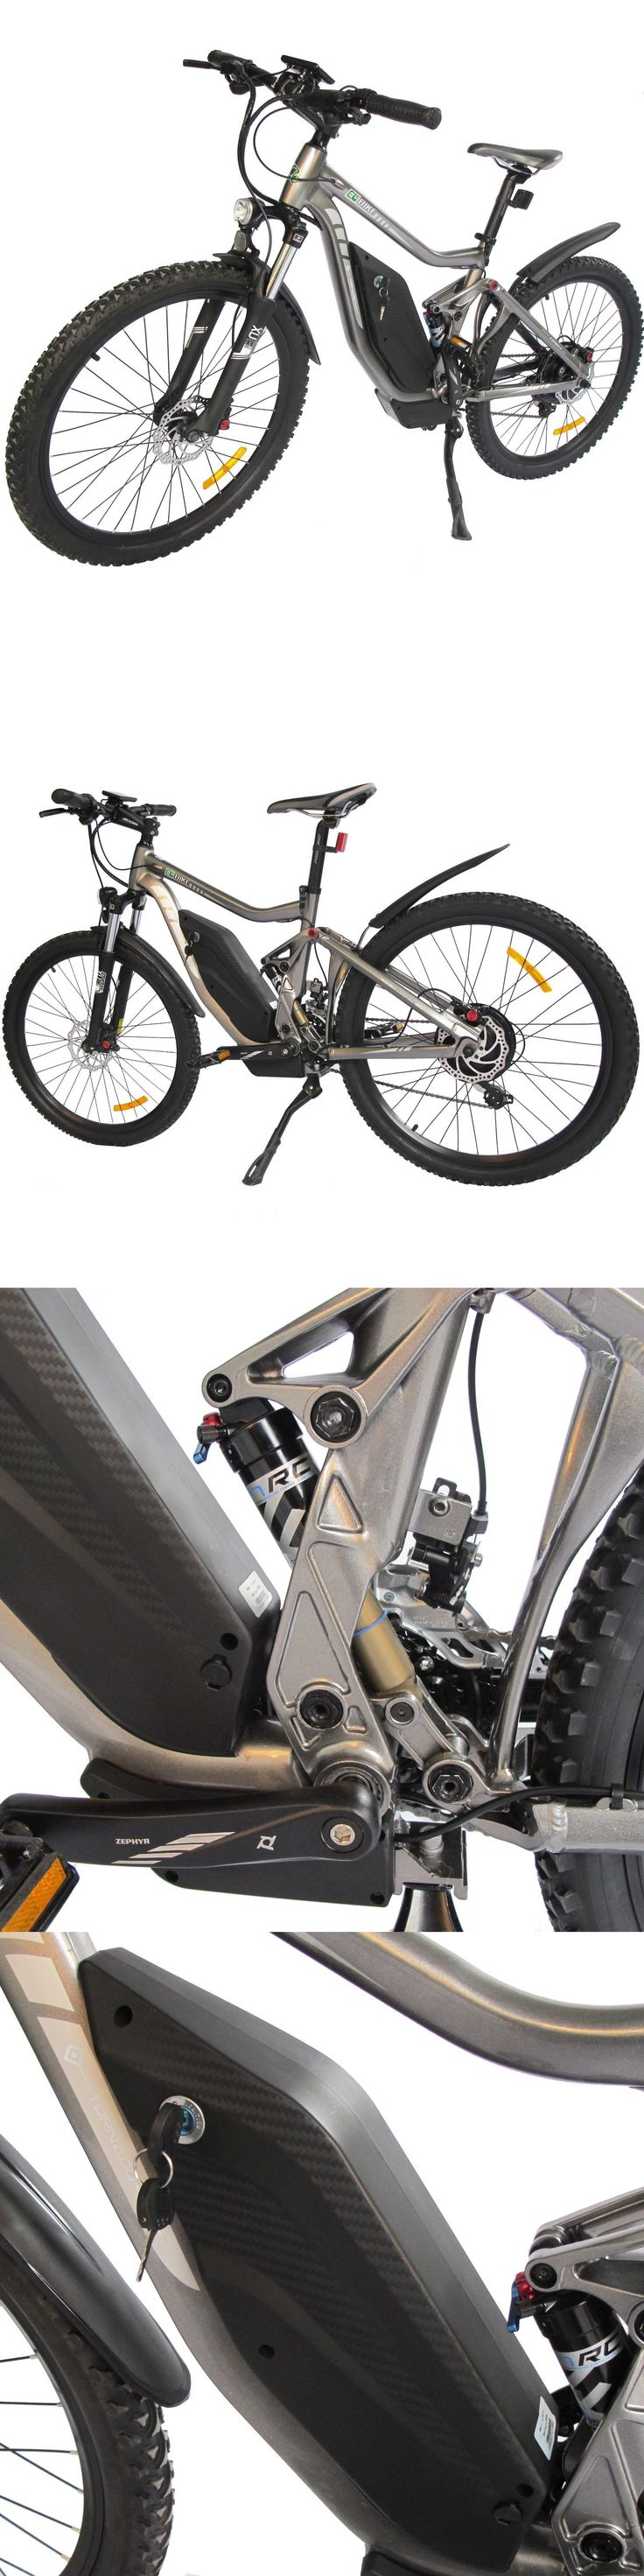 Electric Bicycles 74469: New Gray 26 Mountain Electric Bicycle 48V 10Ah Rear 500W Ebike 23Mph Lithium -> BUY IT NOW ONLY: $1299 on eBay!